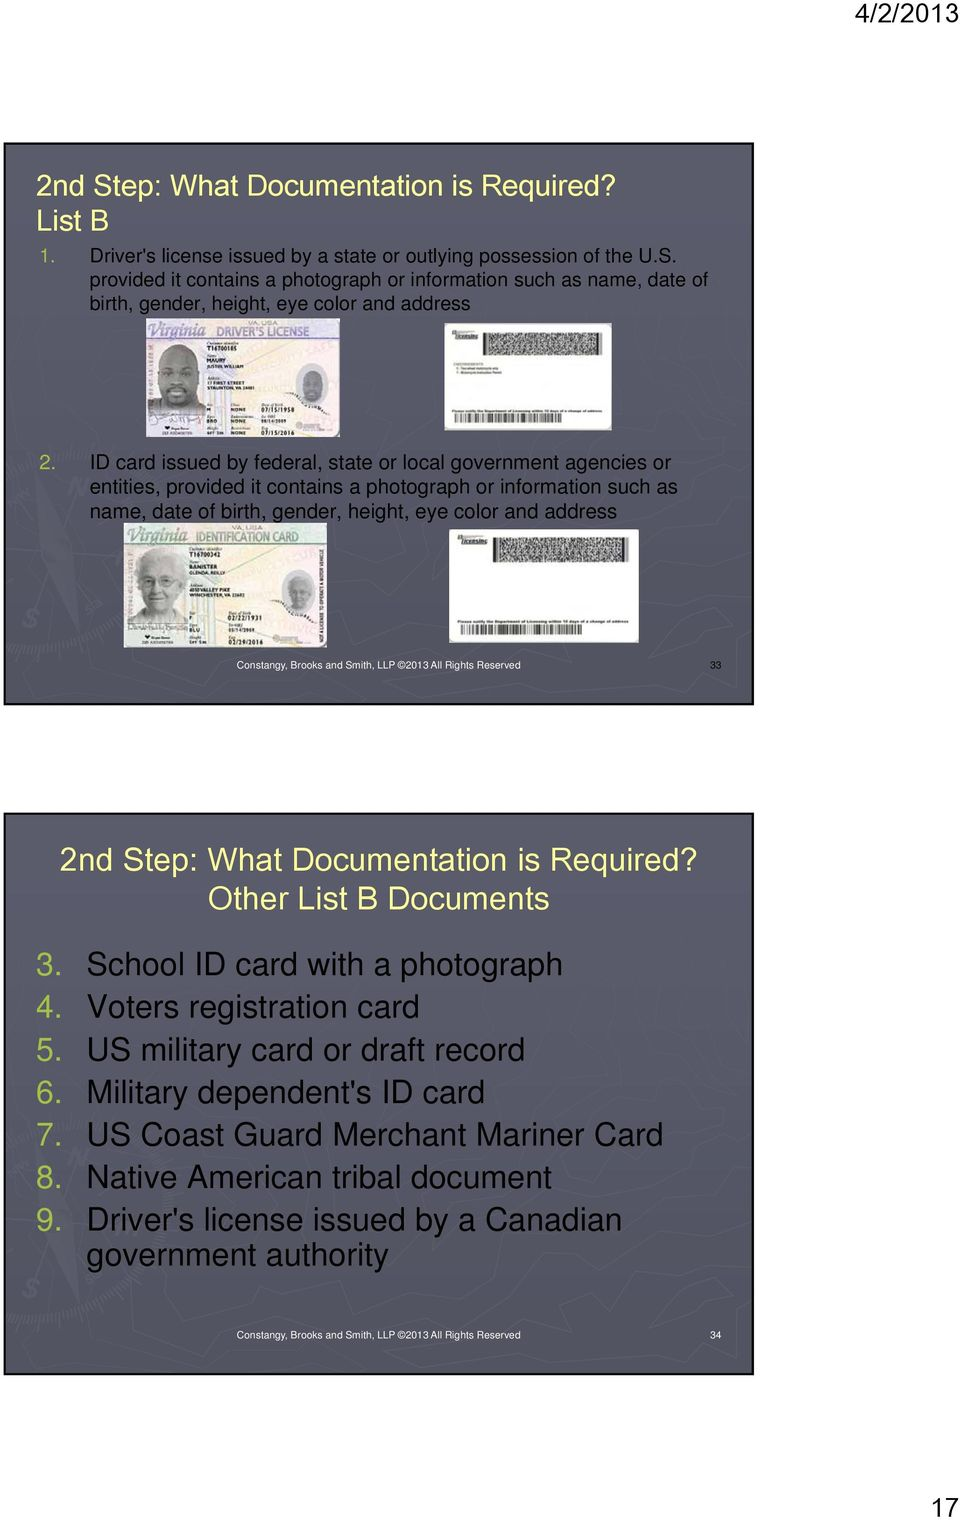 Constangy, Brooks and Smith, LLP 2013 All Rights Reserved 33 2nd Step: What Documentation is Required? Other List B Documents 3. School ID card with a photograph 4. Voters registration card 5.